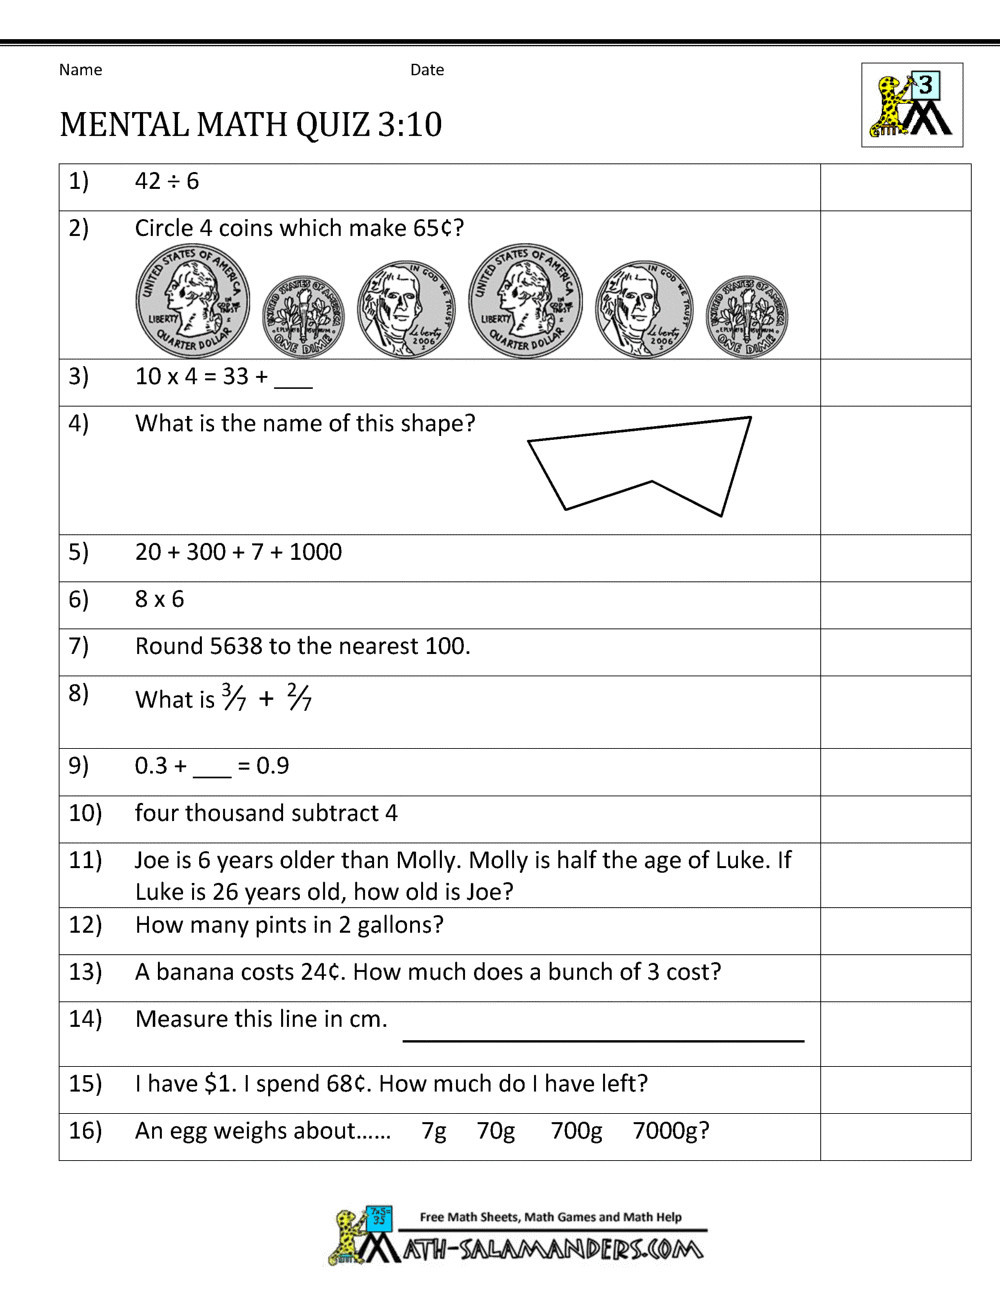 Mental Math Worksheets Grade 6 Printable Money Math Worksheets for 2nd Mental Math 3rd